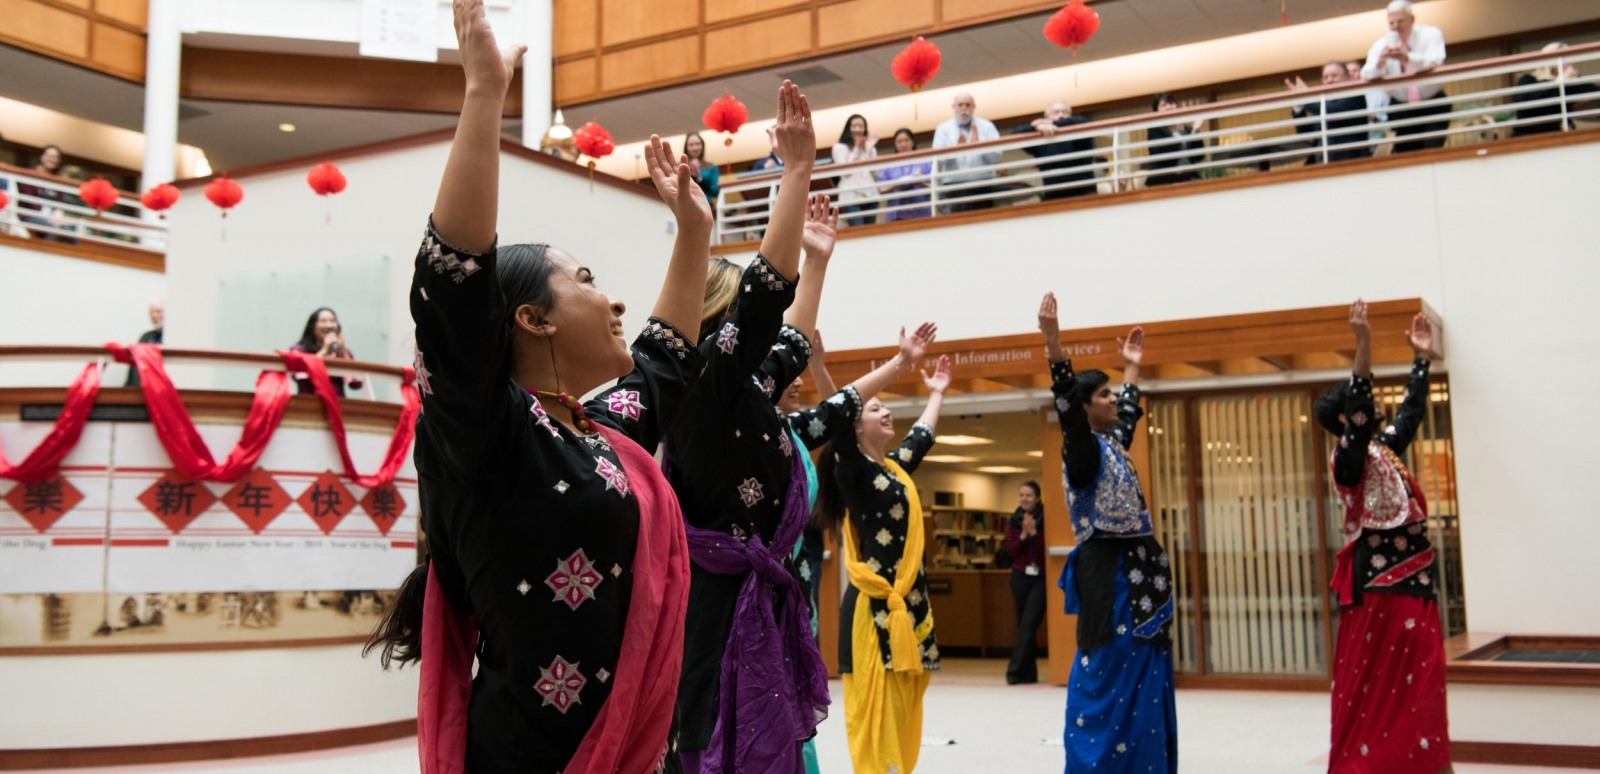 The MIT Bhangra dance group performs during the Laboratory's Lunar New Year celebration